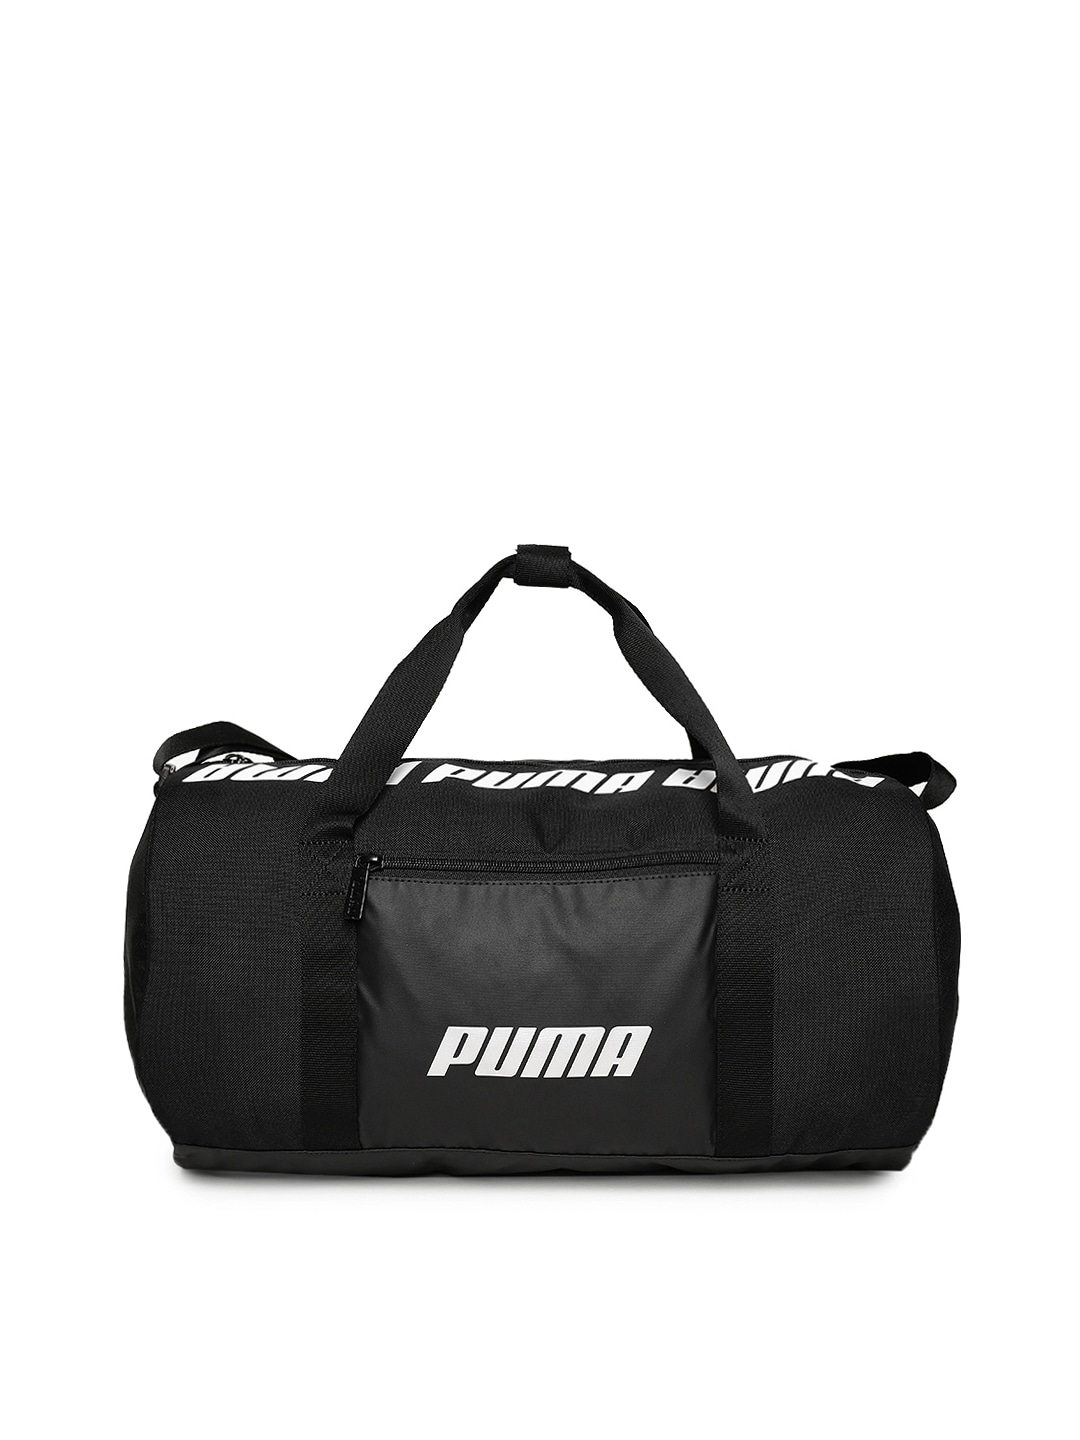 5056c58483 Puma® - Buy Orignal Puma products in India